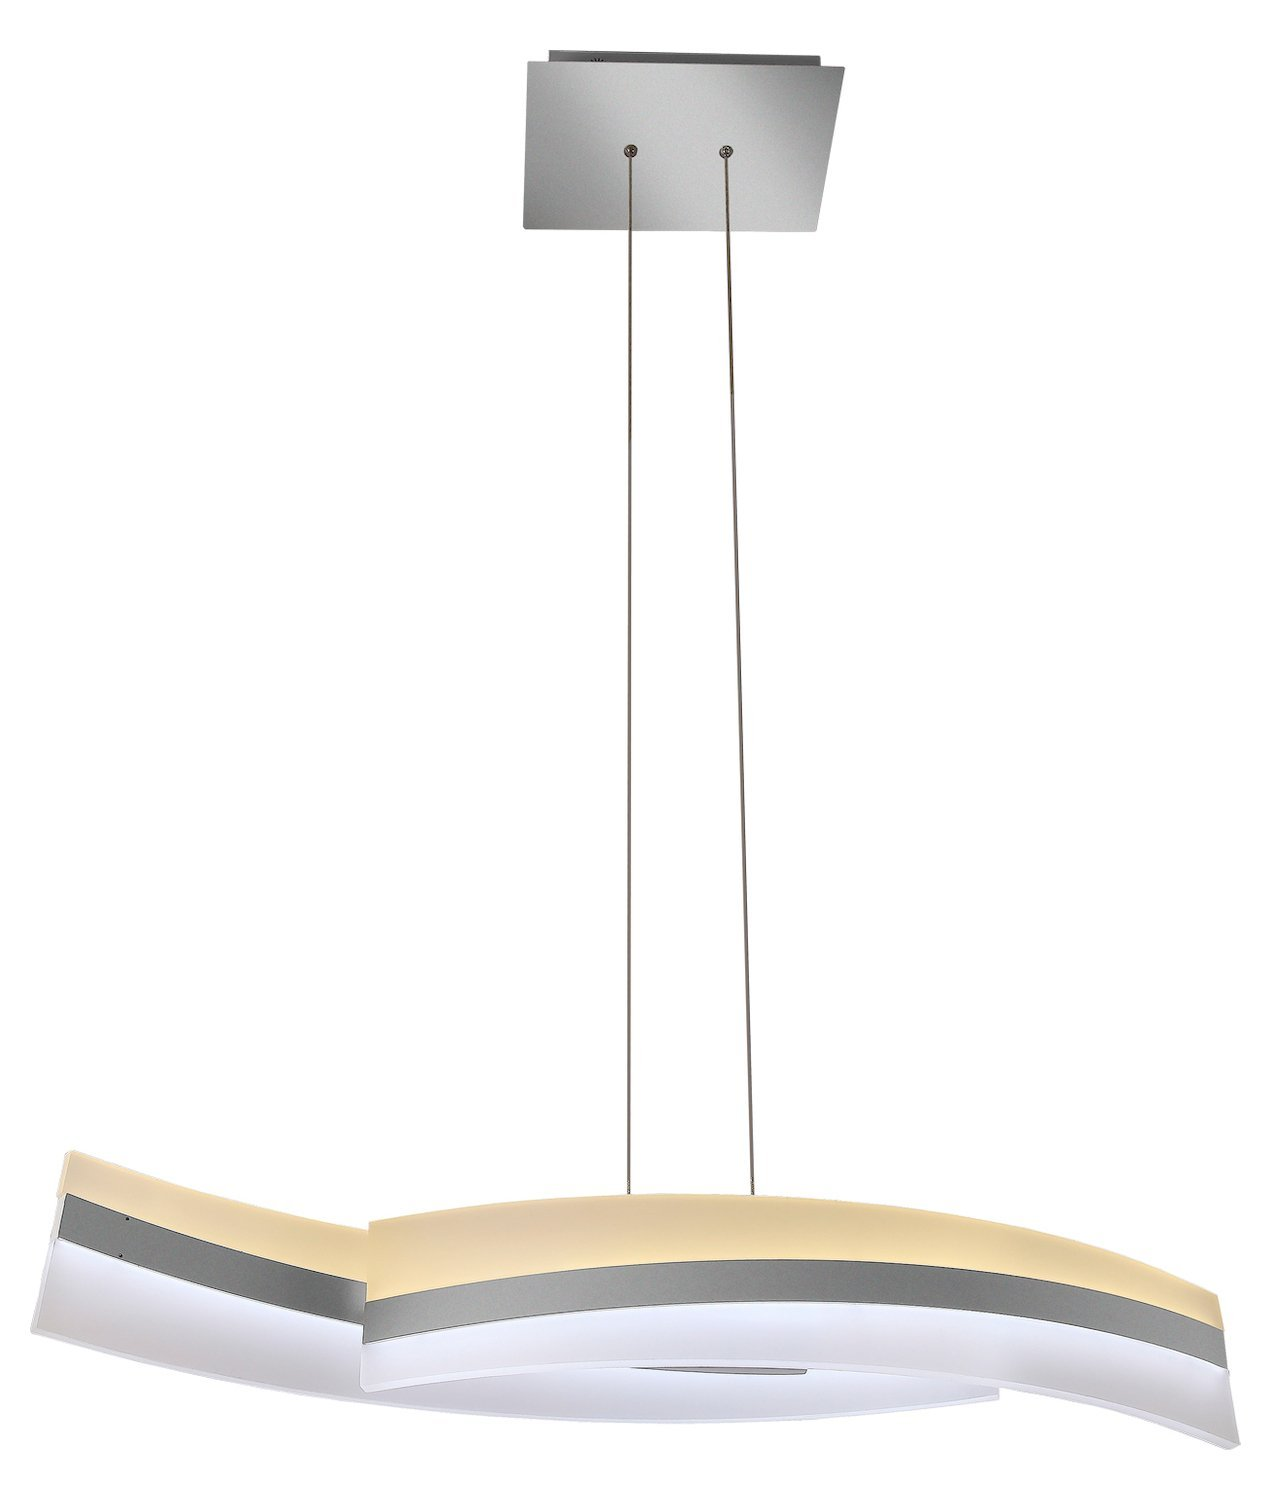 "Metis Vhc36600Al 39"" Two-Tier Wifi-Enabled Tunable White Color-Changing Led Linear Chandelier, From The Vision By Vonn Series"